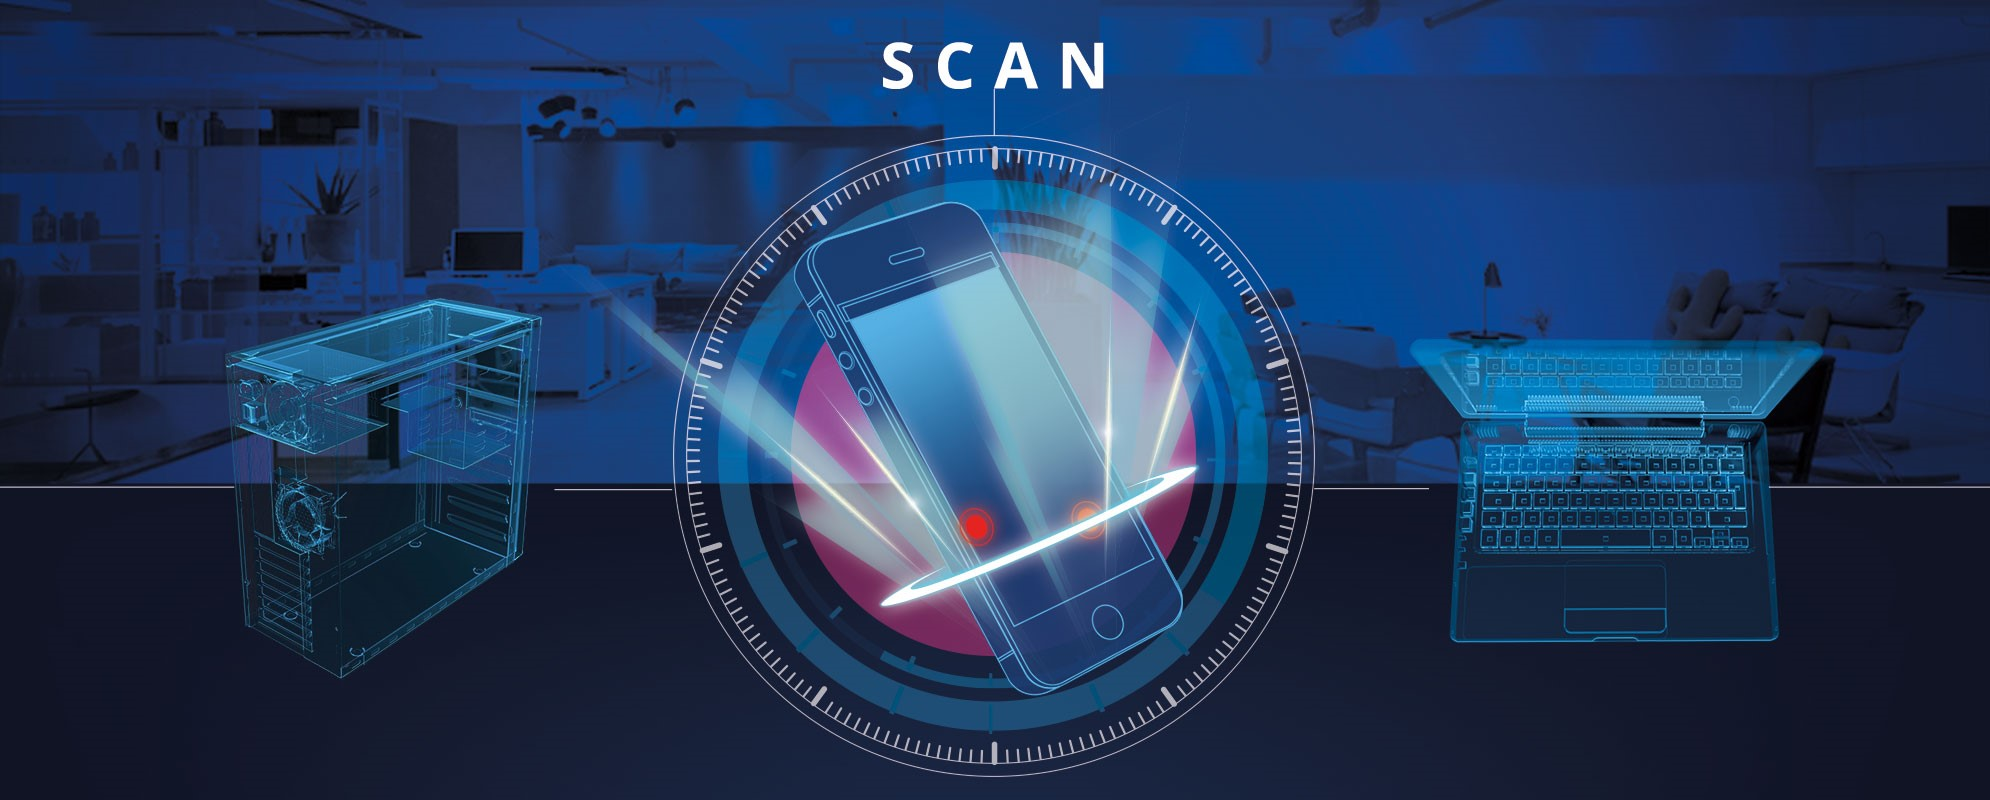 Scannen op vulnerabilities, vulnerability scan, PST business services